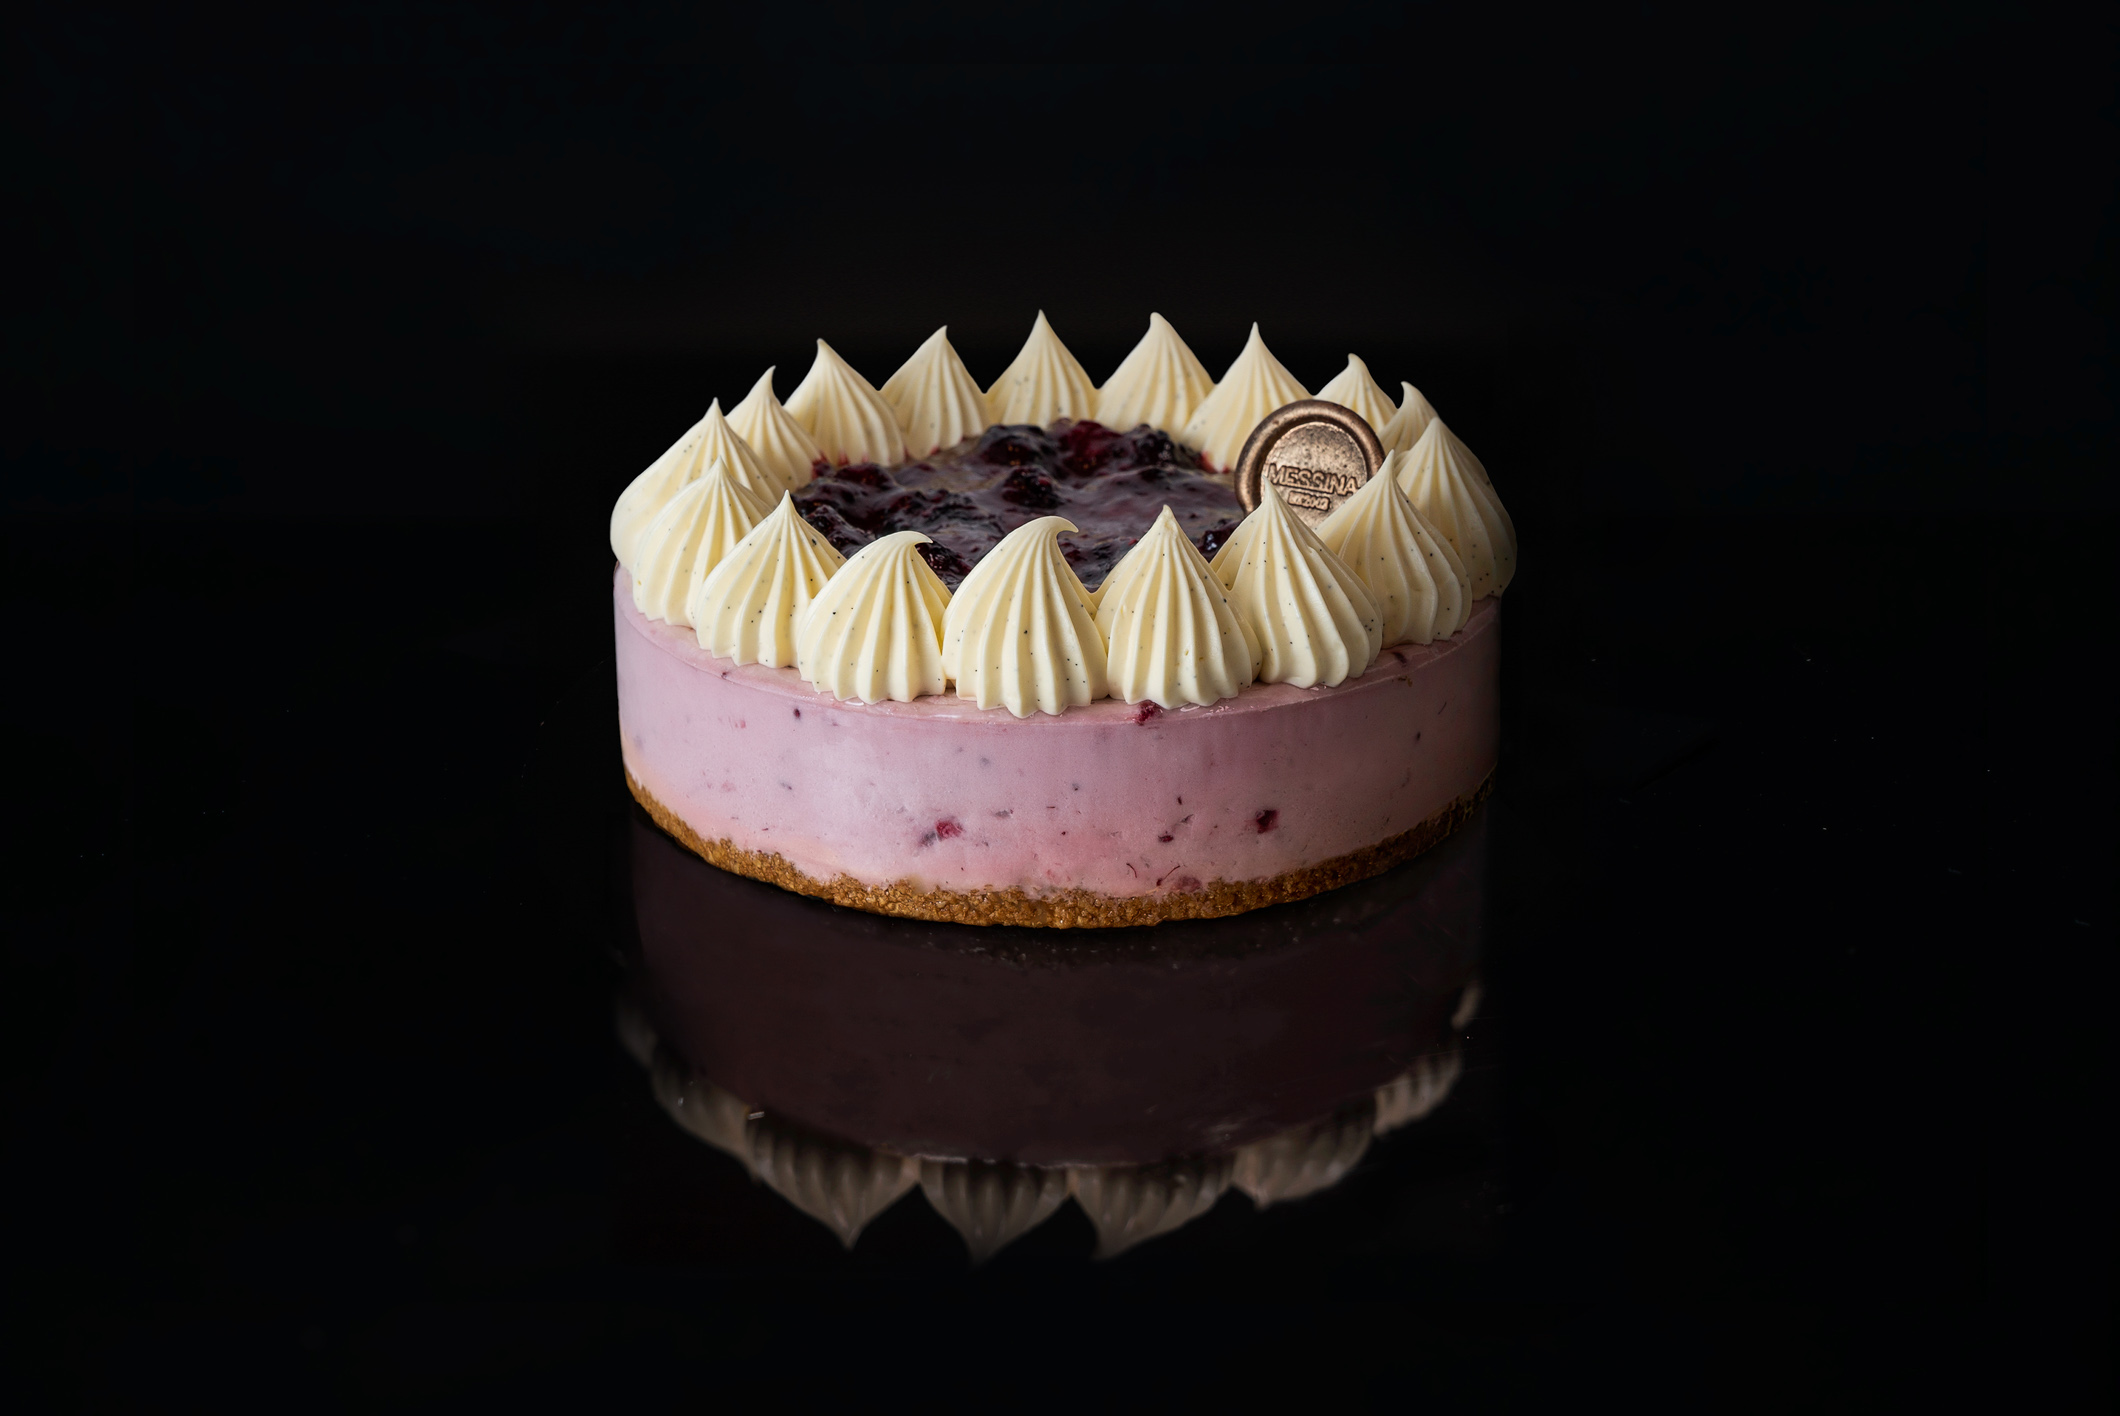 Boysenberry Cheesecake from Messina